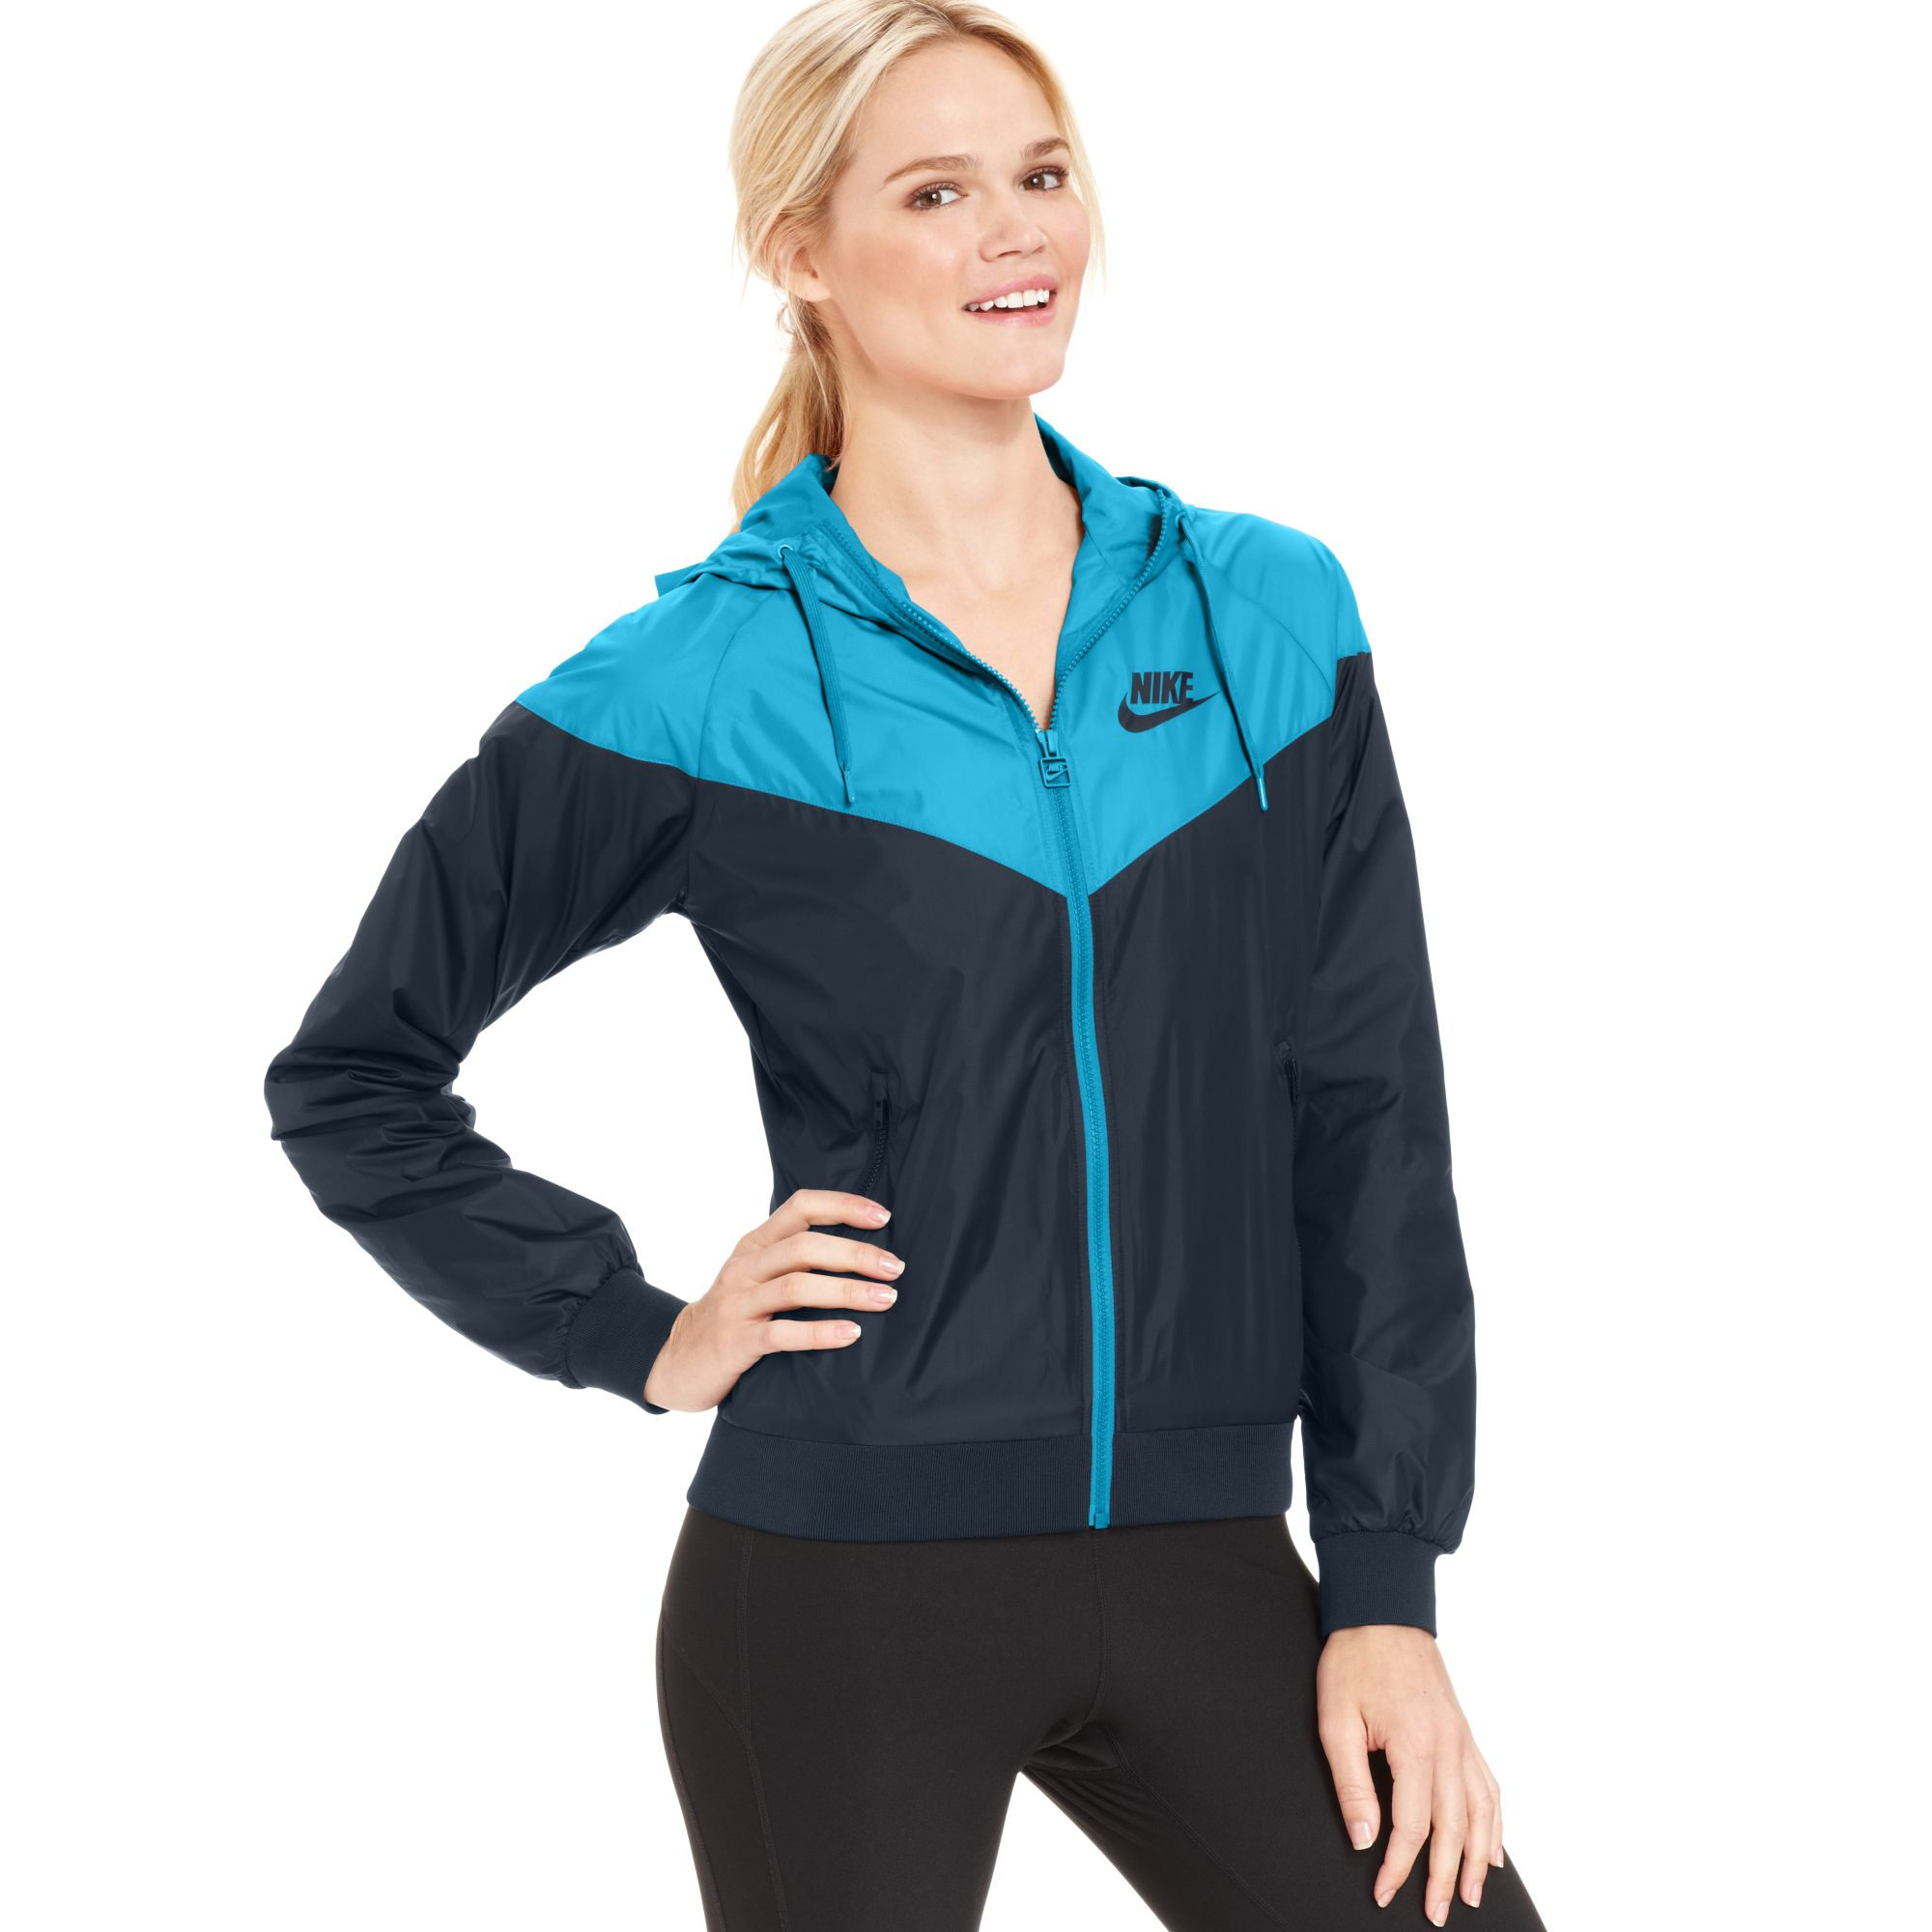 Lyst - Nike Colorblocked Hooded Windrunner Jacket in Blue 3109263ab0